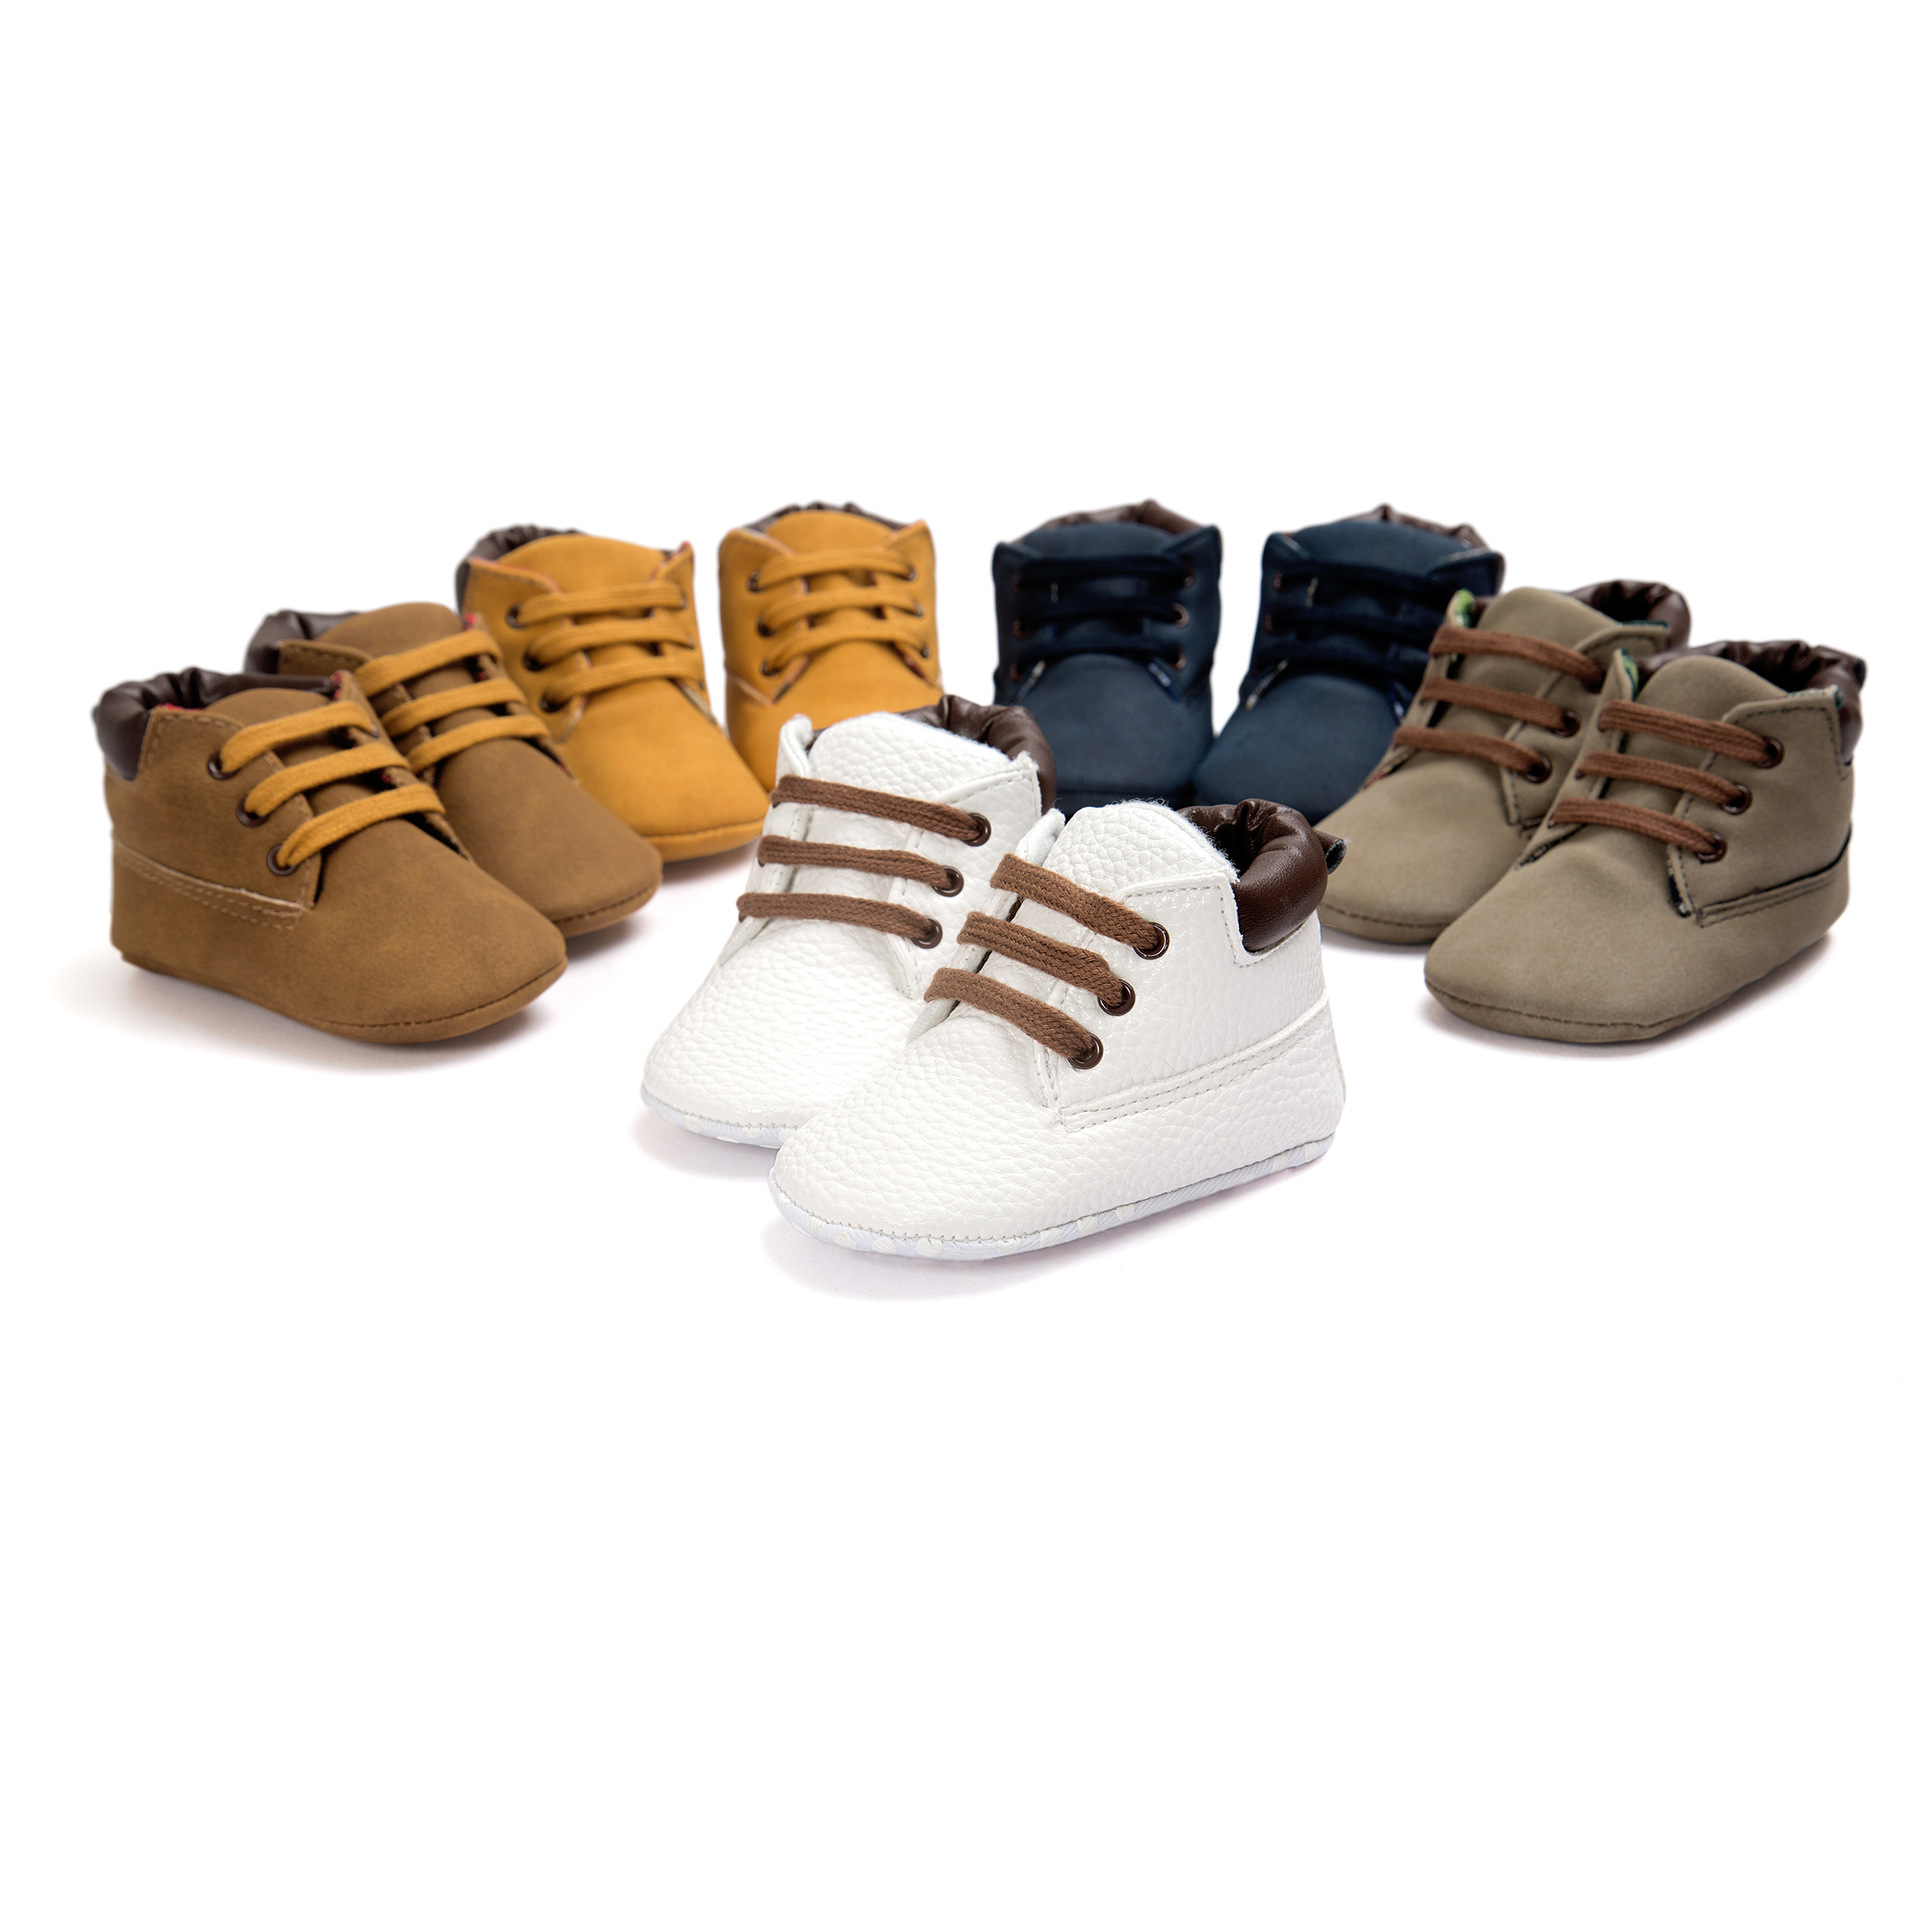 Fashion Newborn Bebe Martin Boots Infant Baby Shoes First Walkers Baby Moccasins PU Leather Prewalkers Booties